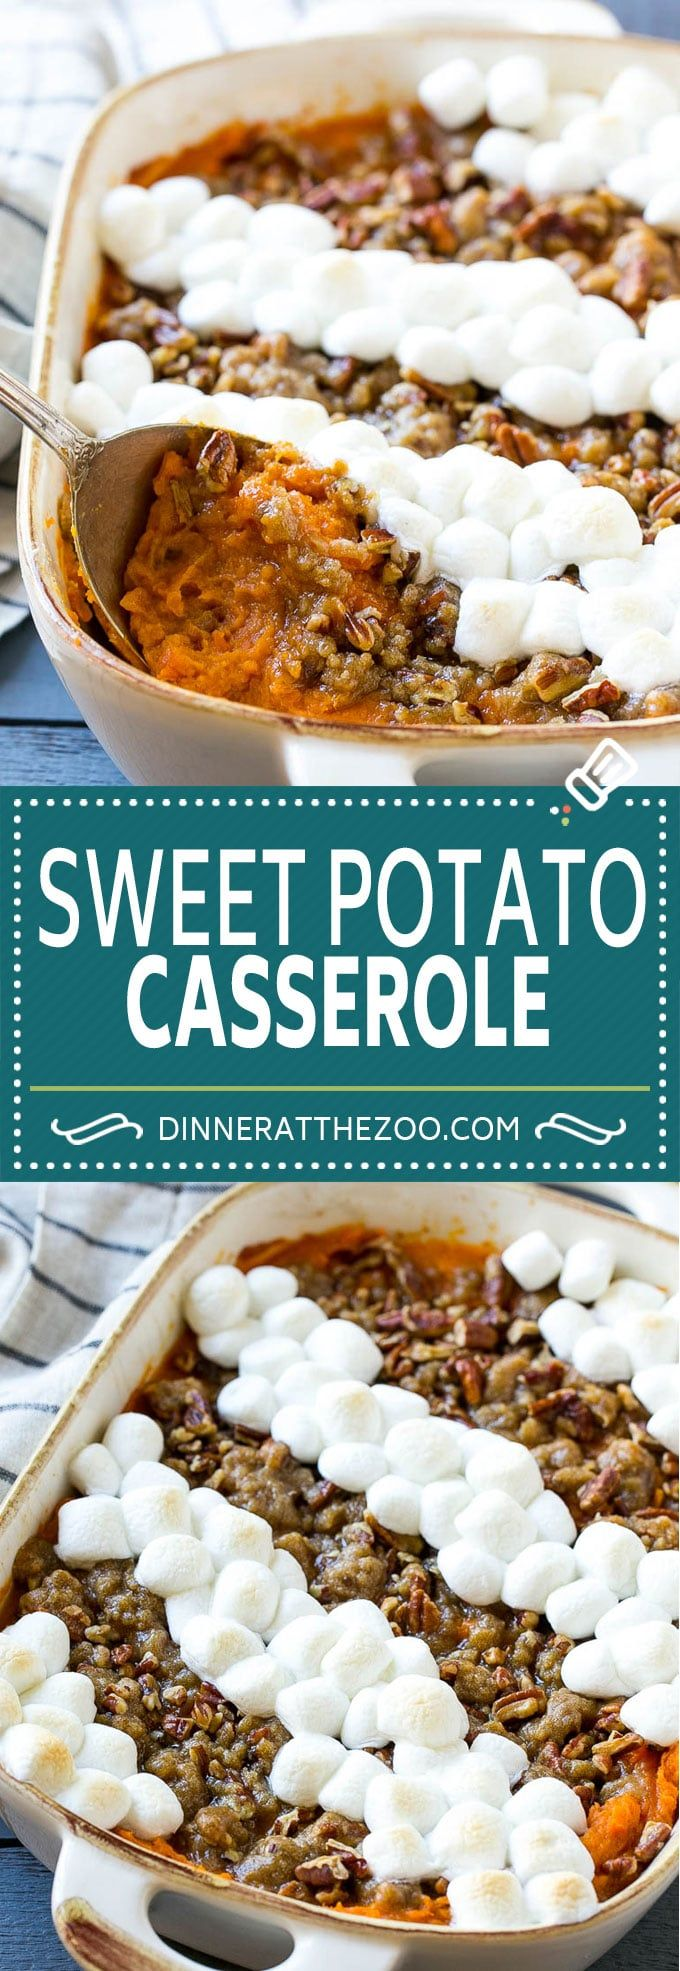 Sweet Potato Casserole #sweetpotatocasserolewithmarshmallows